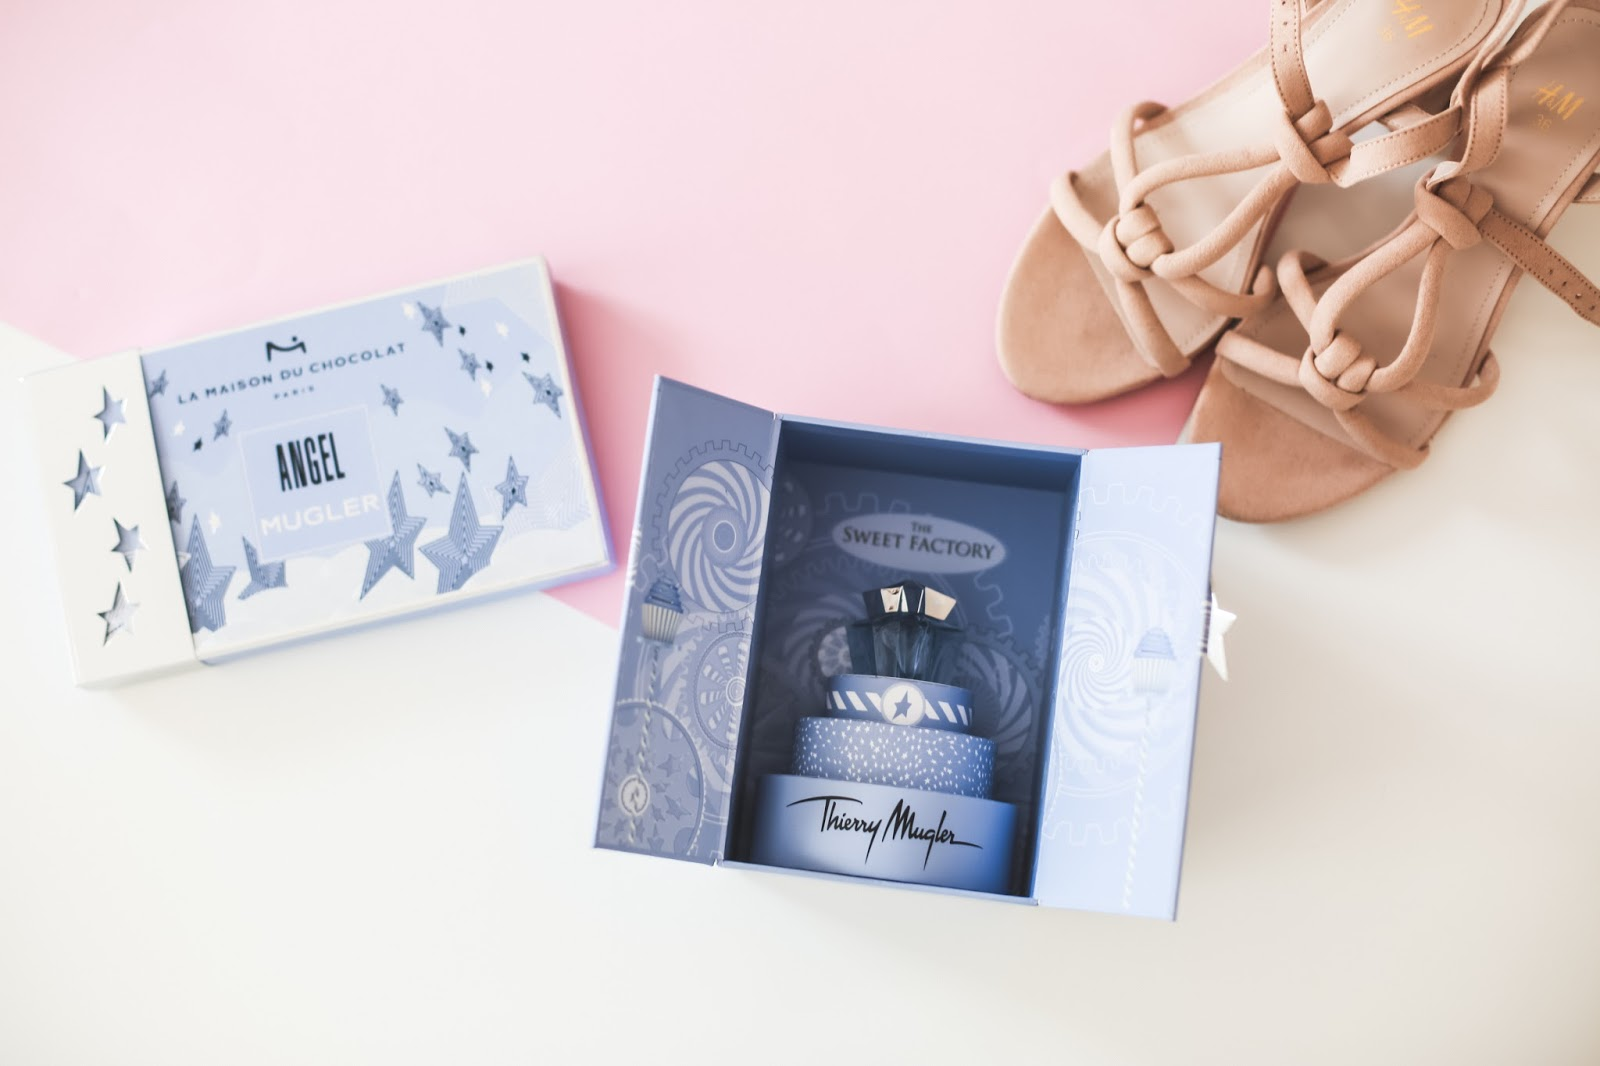 Parfum Angel Thierry Mugler coffret The Sweet Factory